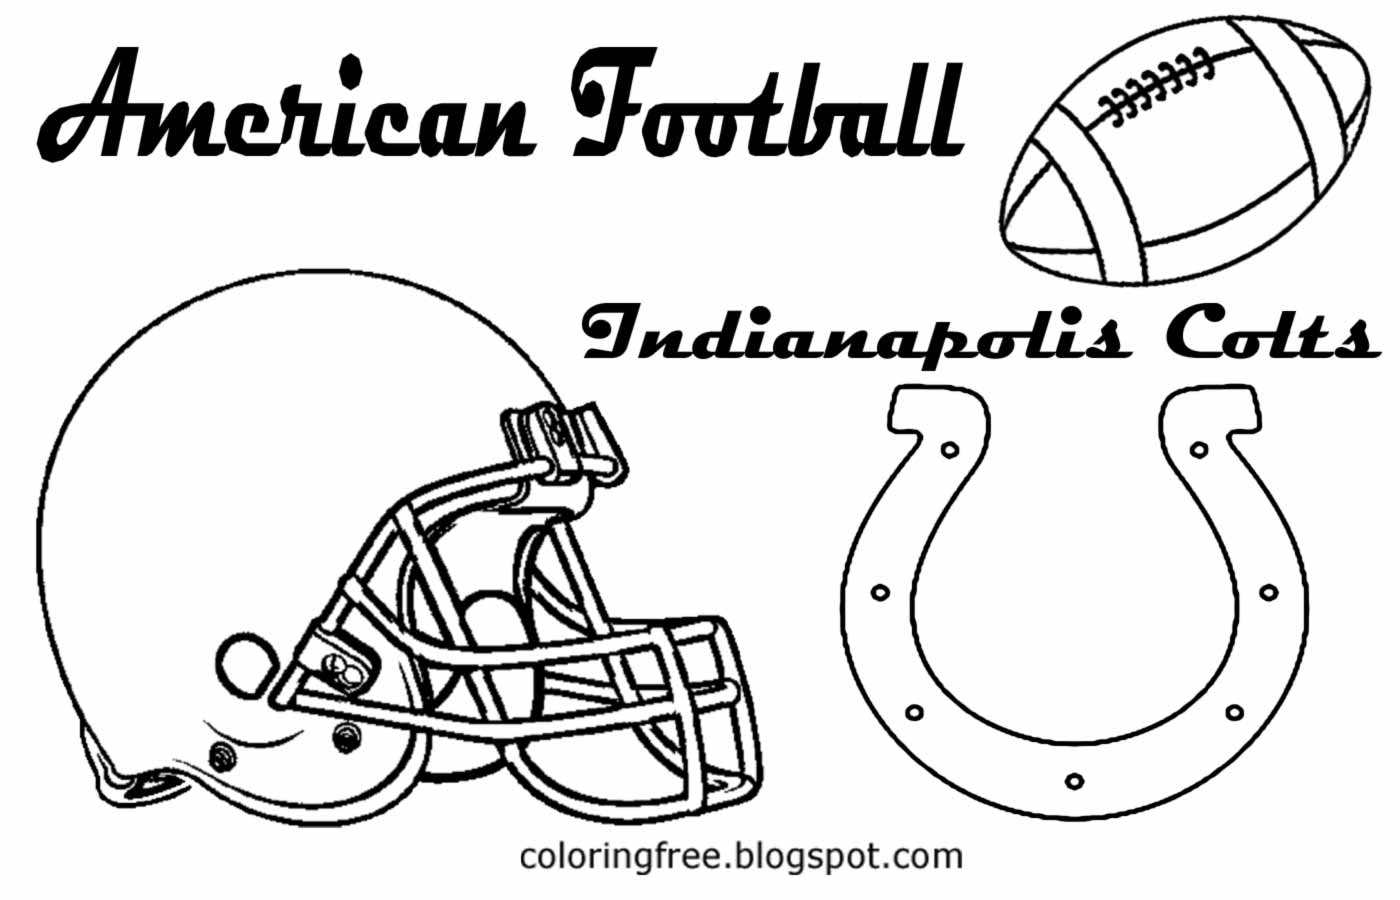 indianapolis colts coloring pages 30 free nfl coloring pages printable pages coloring colts indianapolis